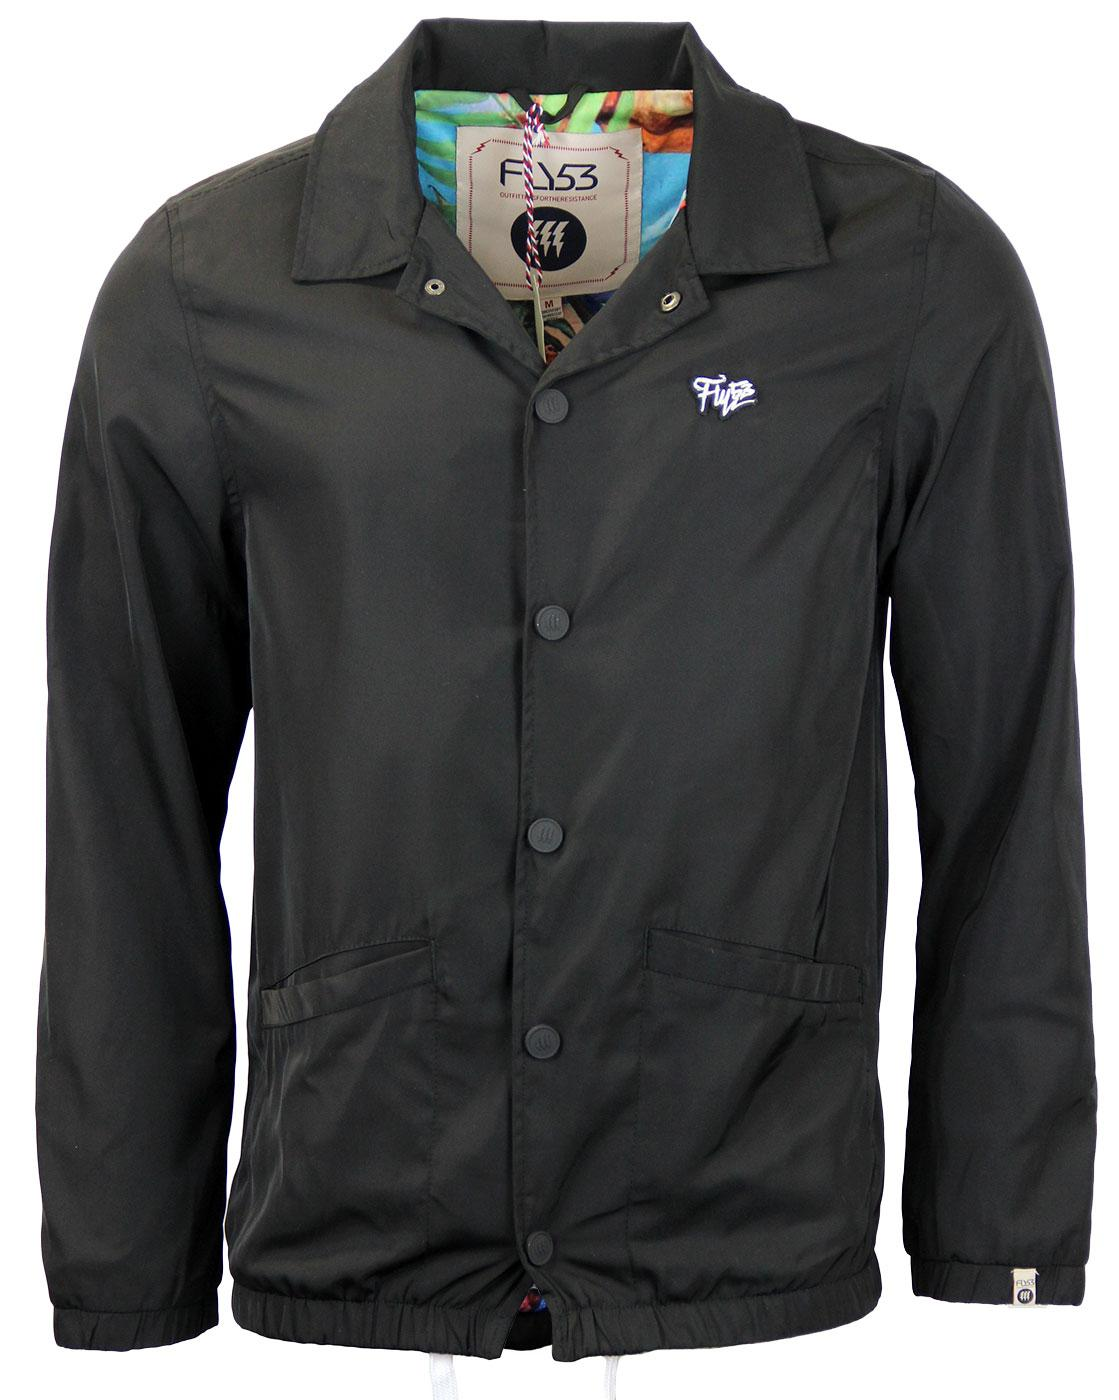 Velocirapter FLY53 Retro Longline Coaches Jacket